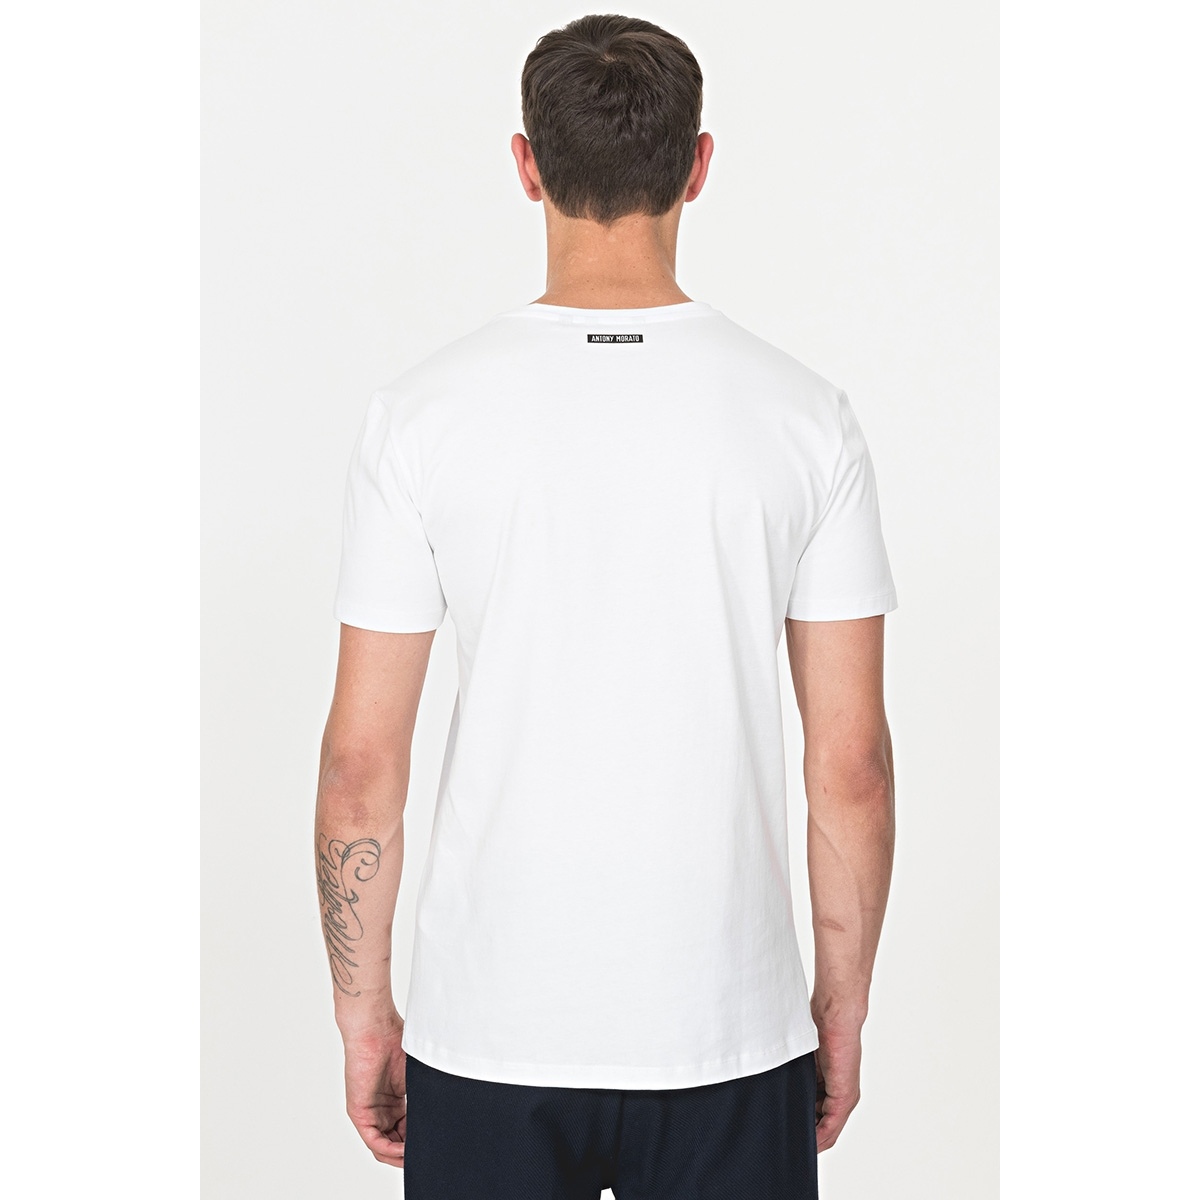 t shirt with lion print mmks01663 fa100189 antony morato t-shirt white